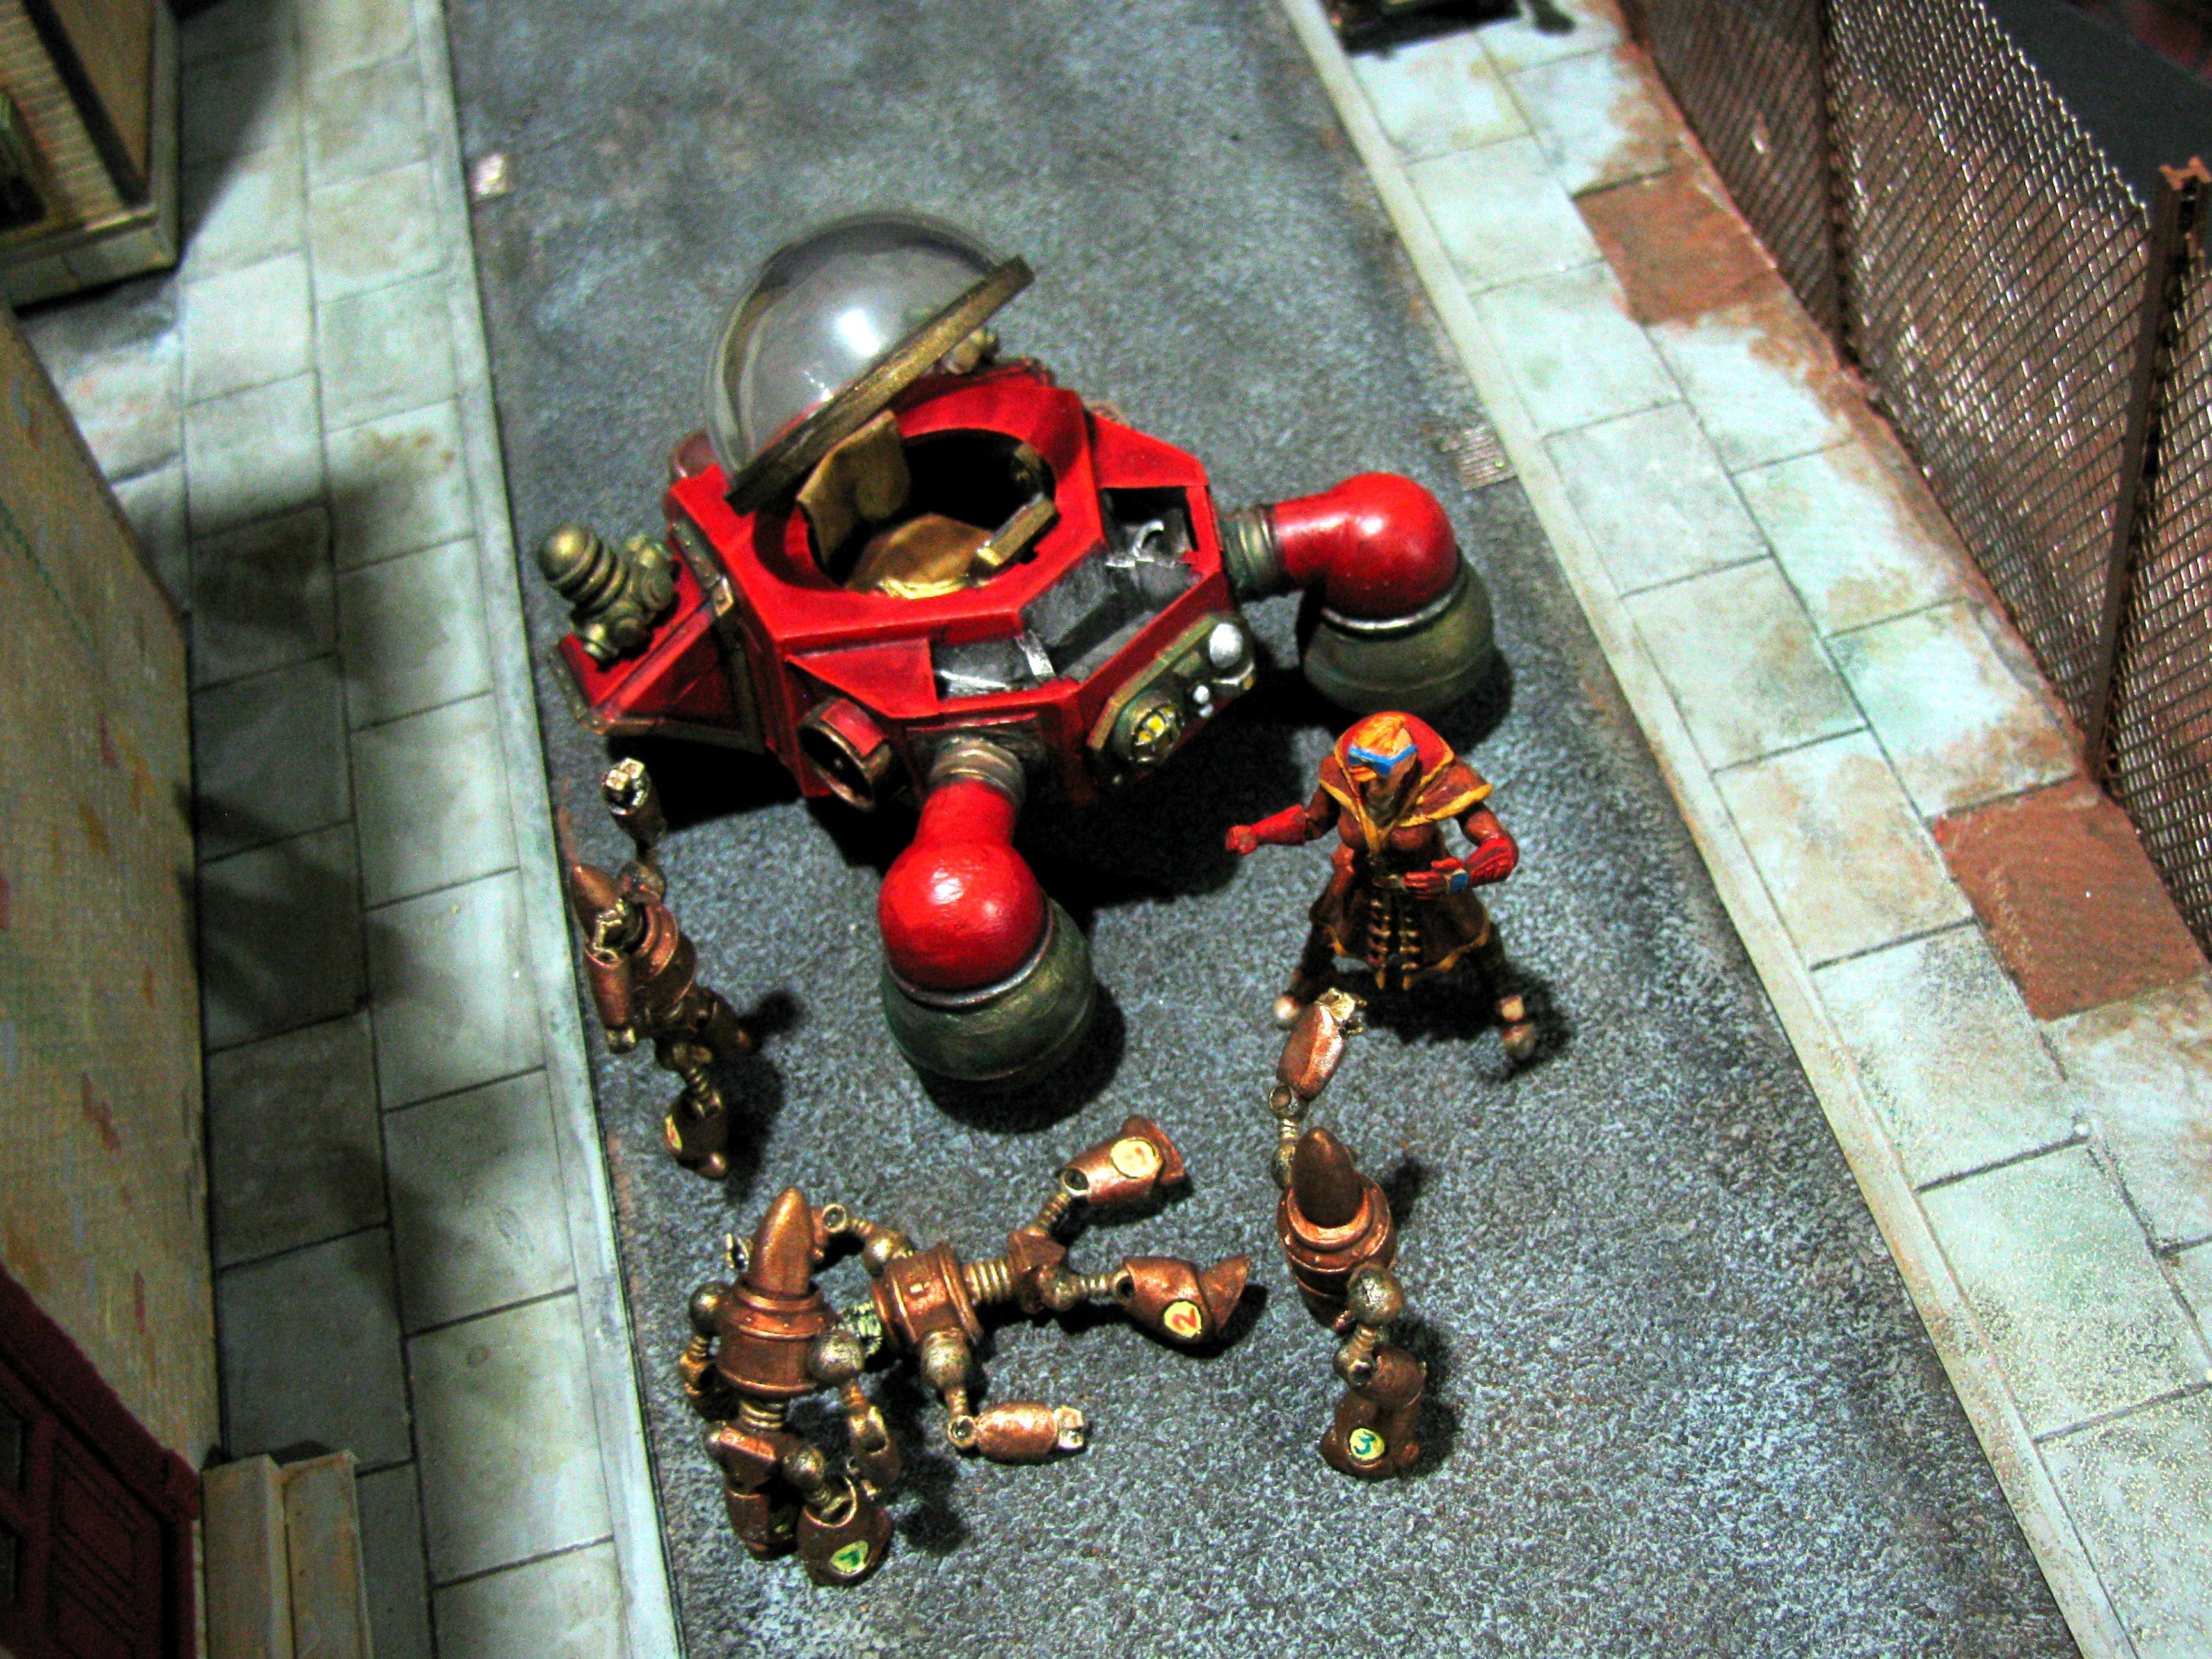 Accident, Automata, Competition, Diorama, League, Rivets, Robots, Steampunk